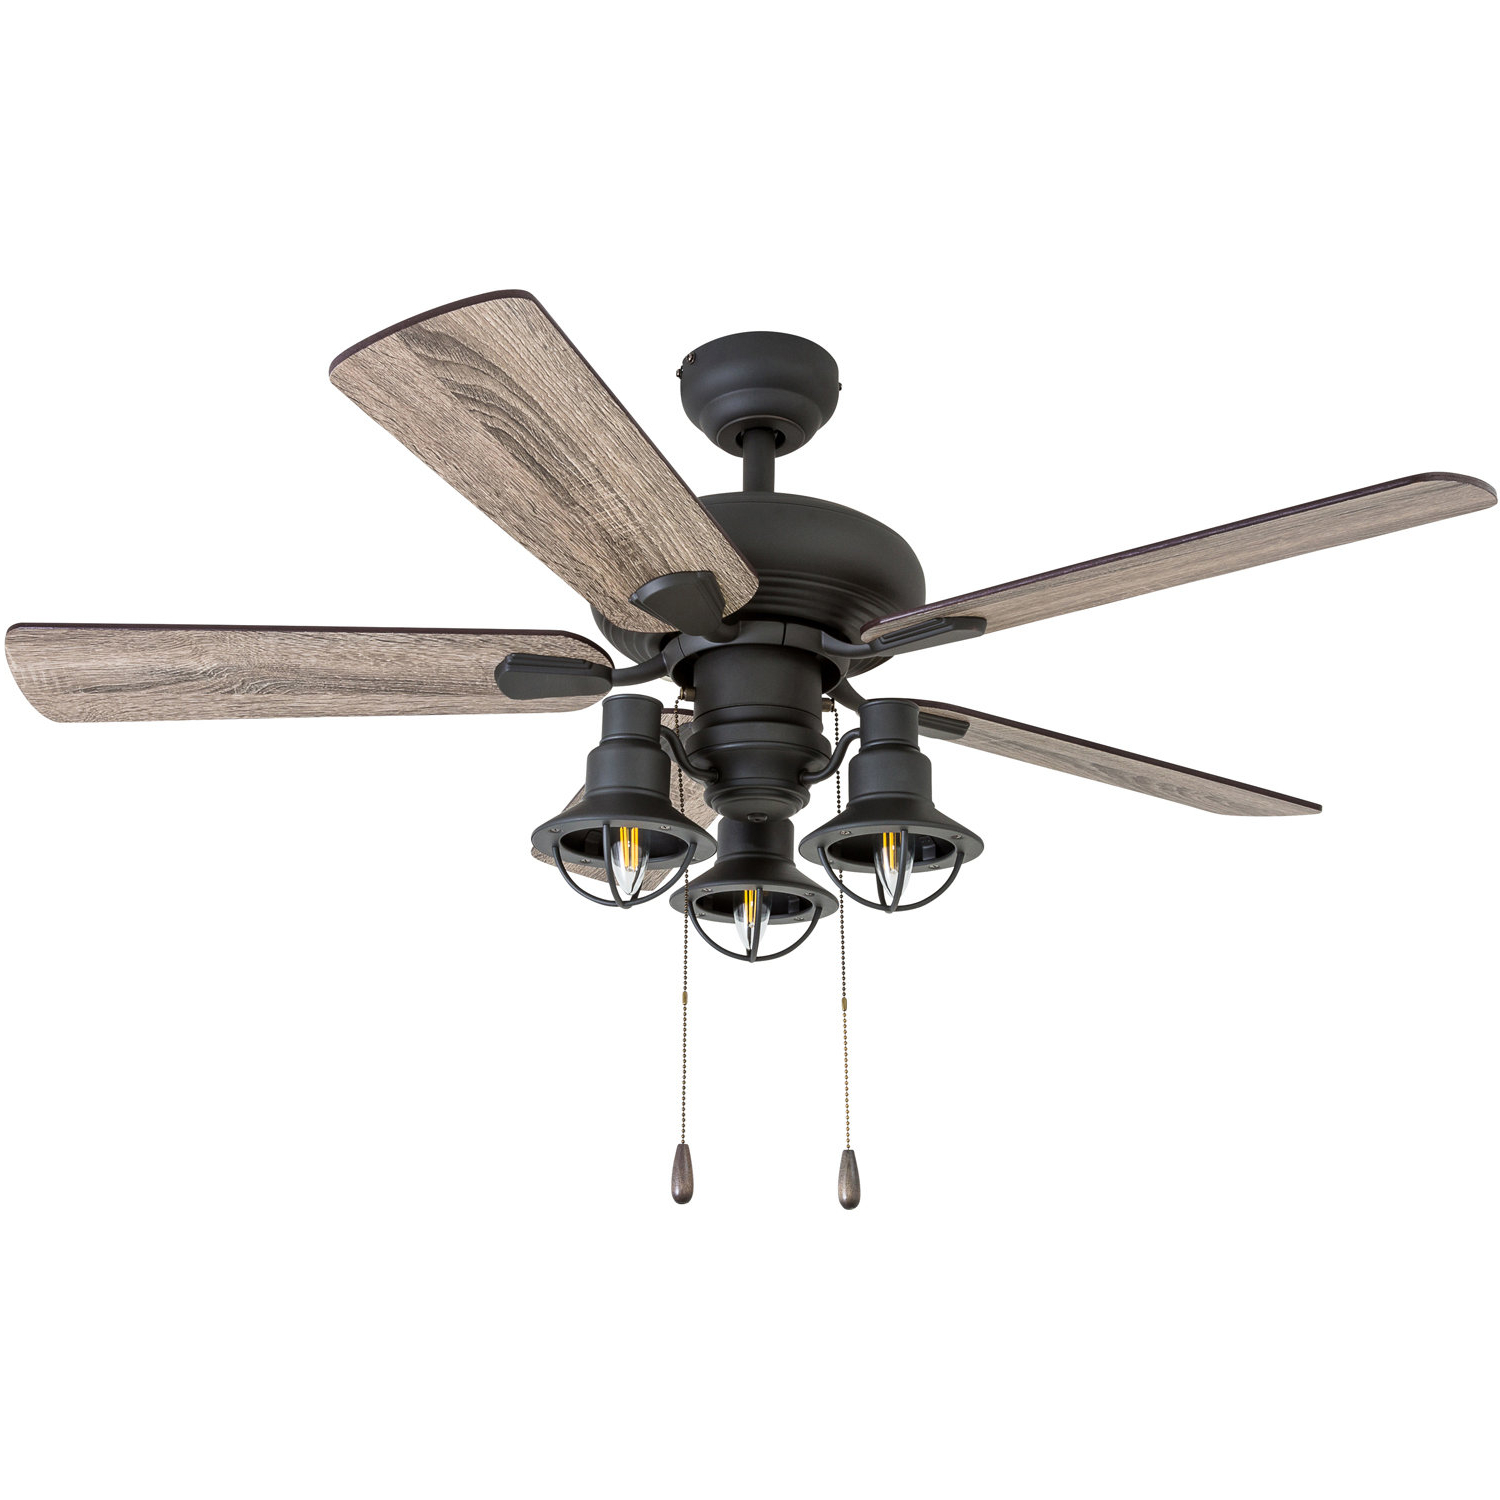 Auden 5 Blade Led Ceiling Fans For Best And Newest Five Blade Ceiling Fans (View 5 of 20)